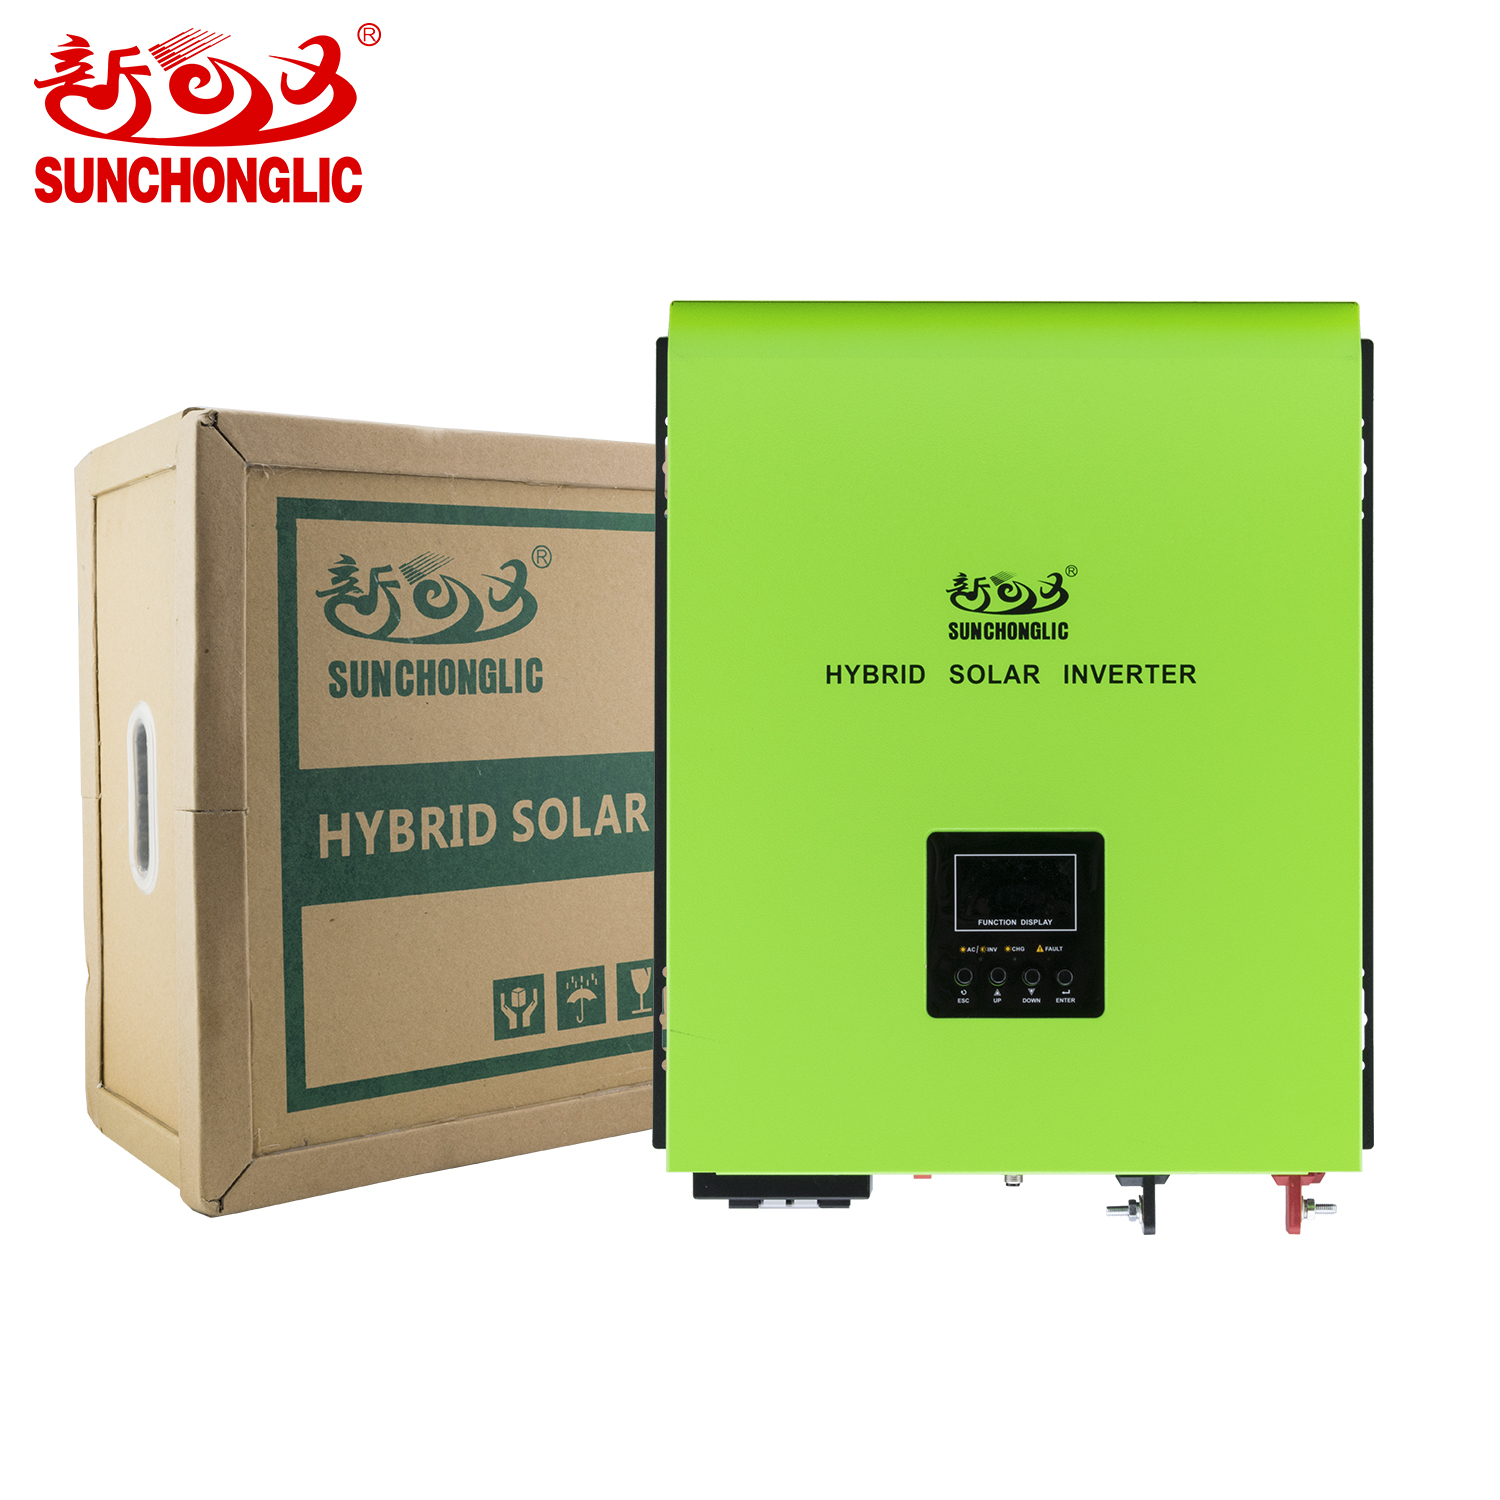 Sunchonglic 48v 5kva 3000w pure sine wave hybrid solar inverter with 30A AC charger and 60A mppt solar charge controller